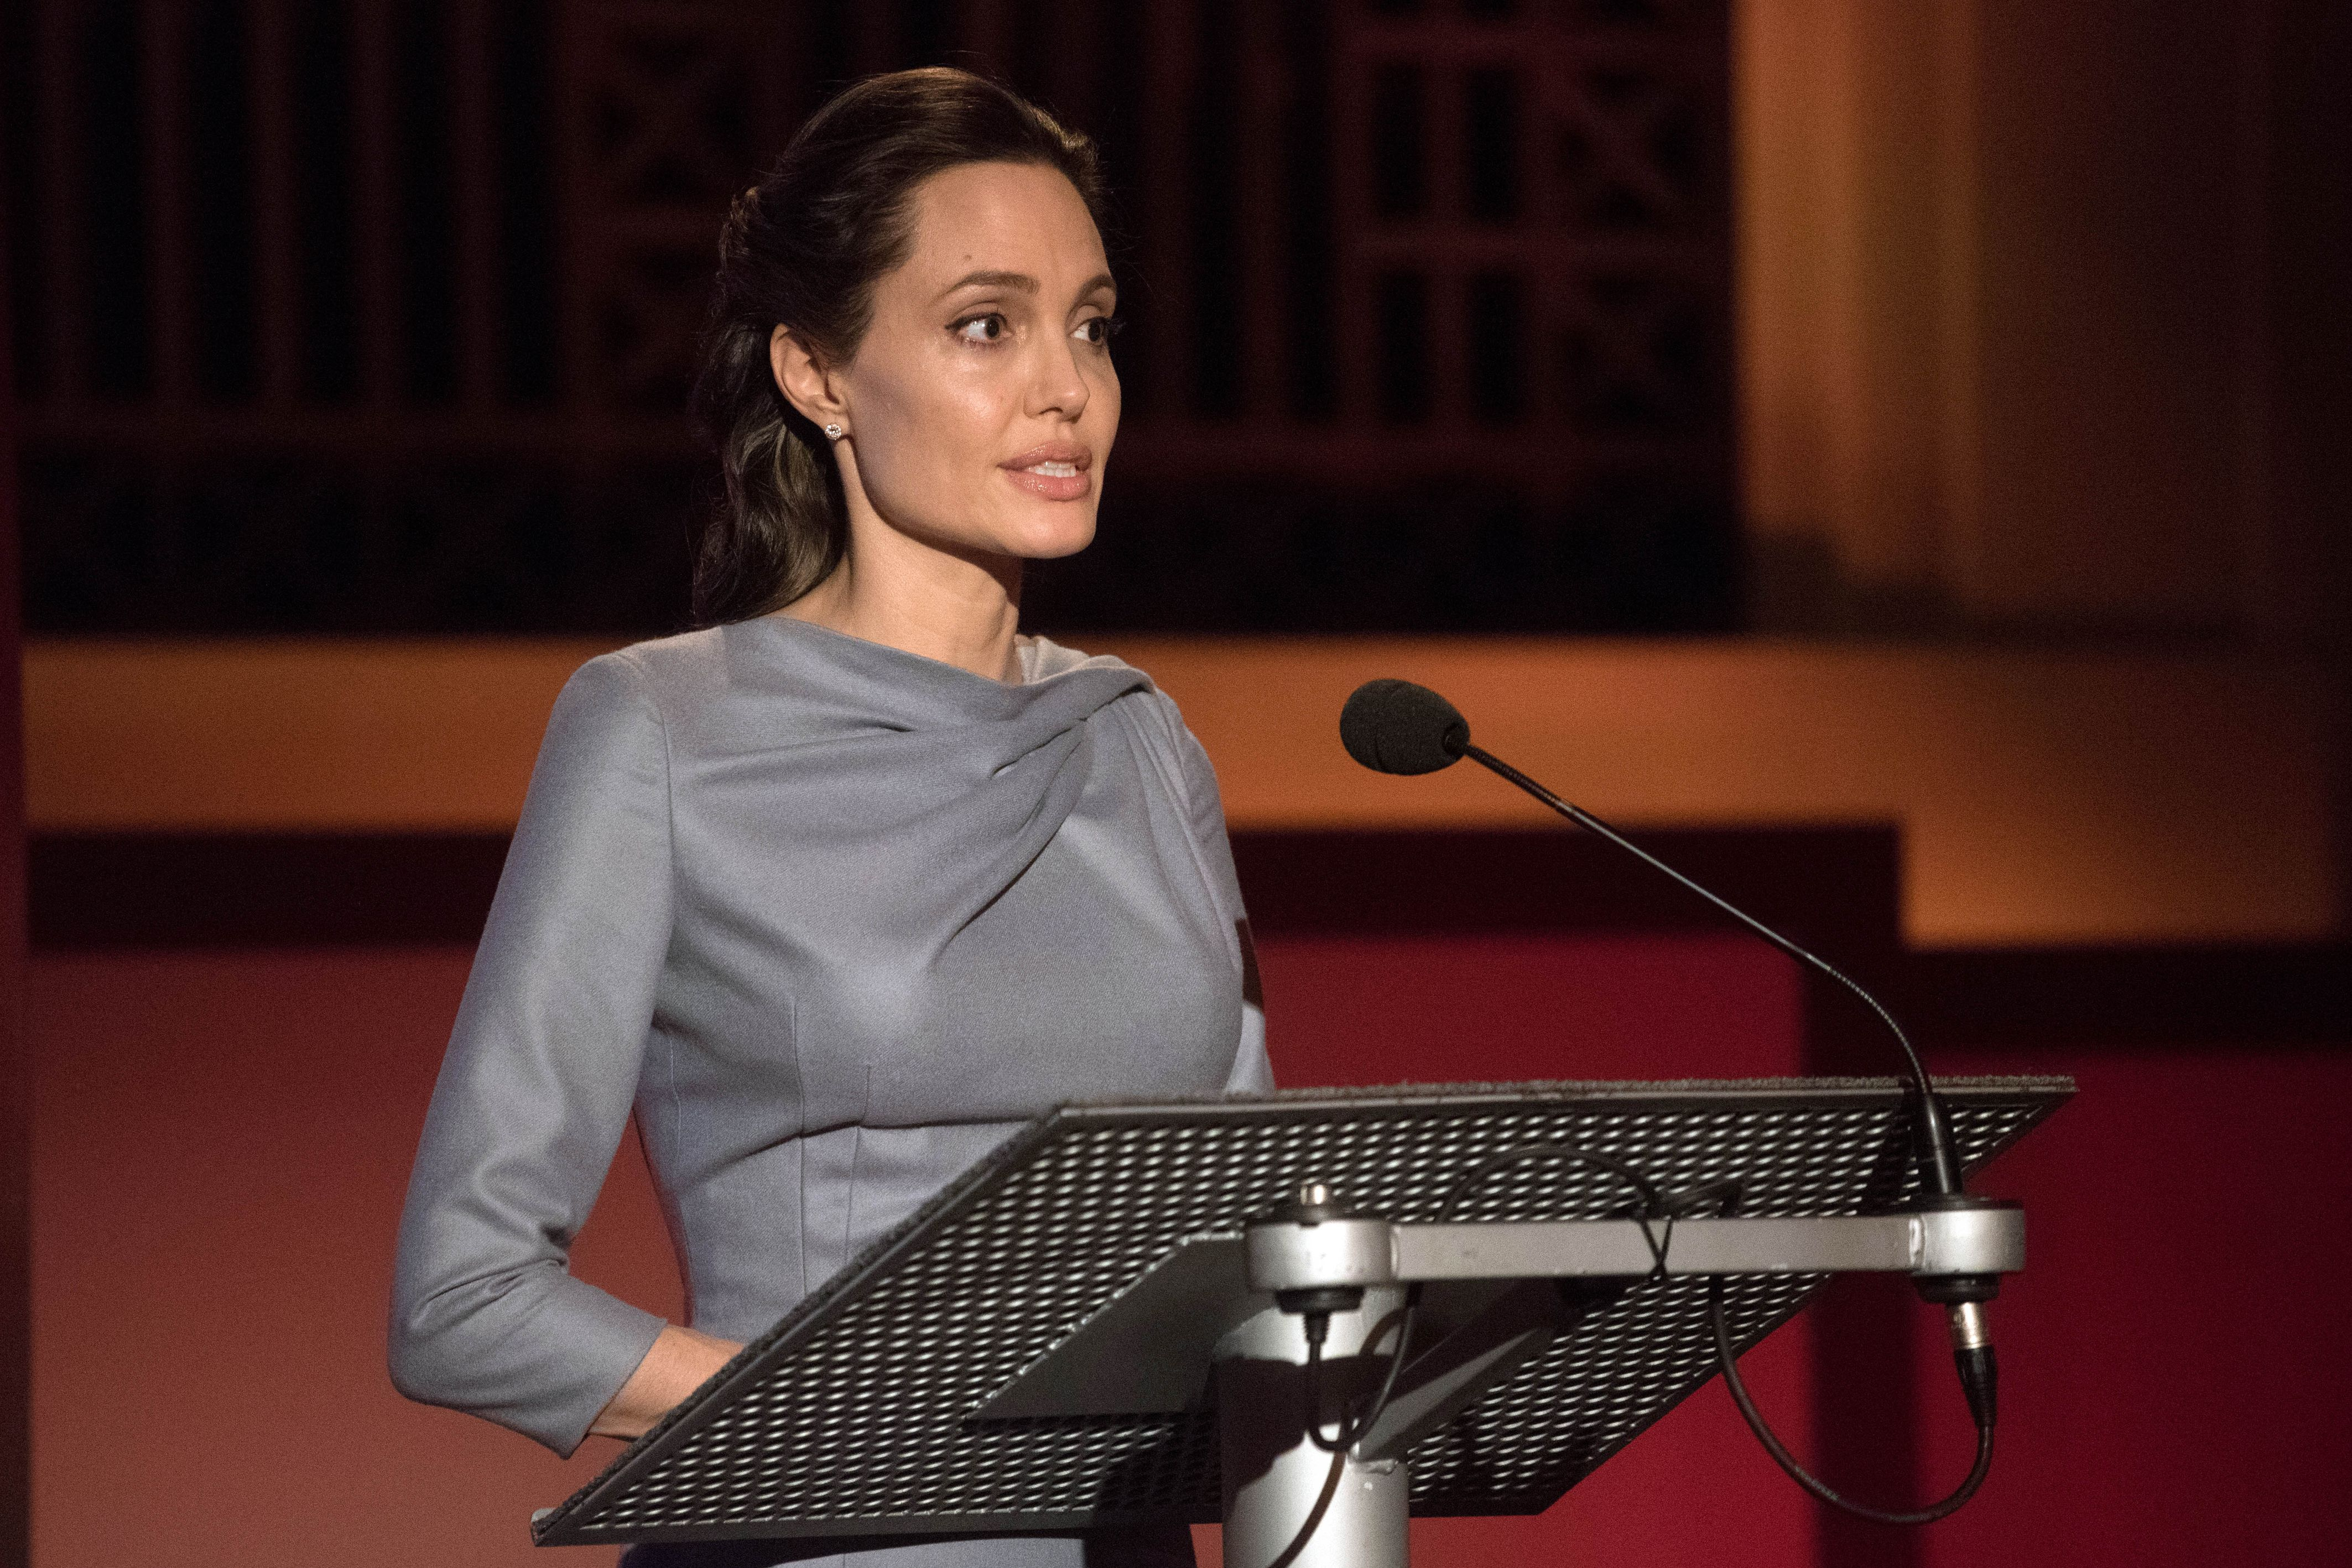 Angelina Jolie talks at BBC during the Global Refugee Crisis Conference in London.